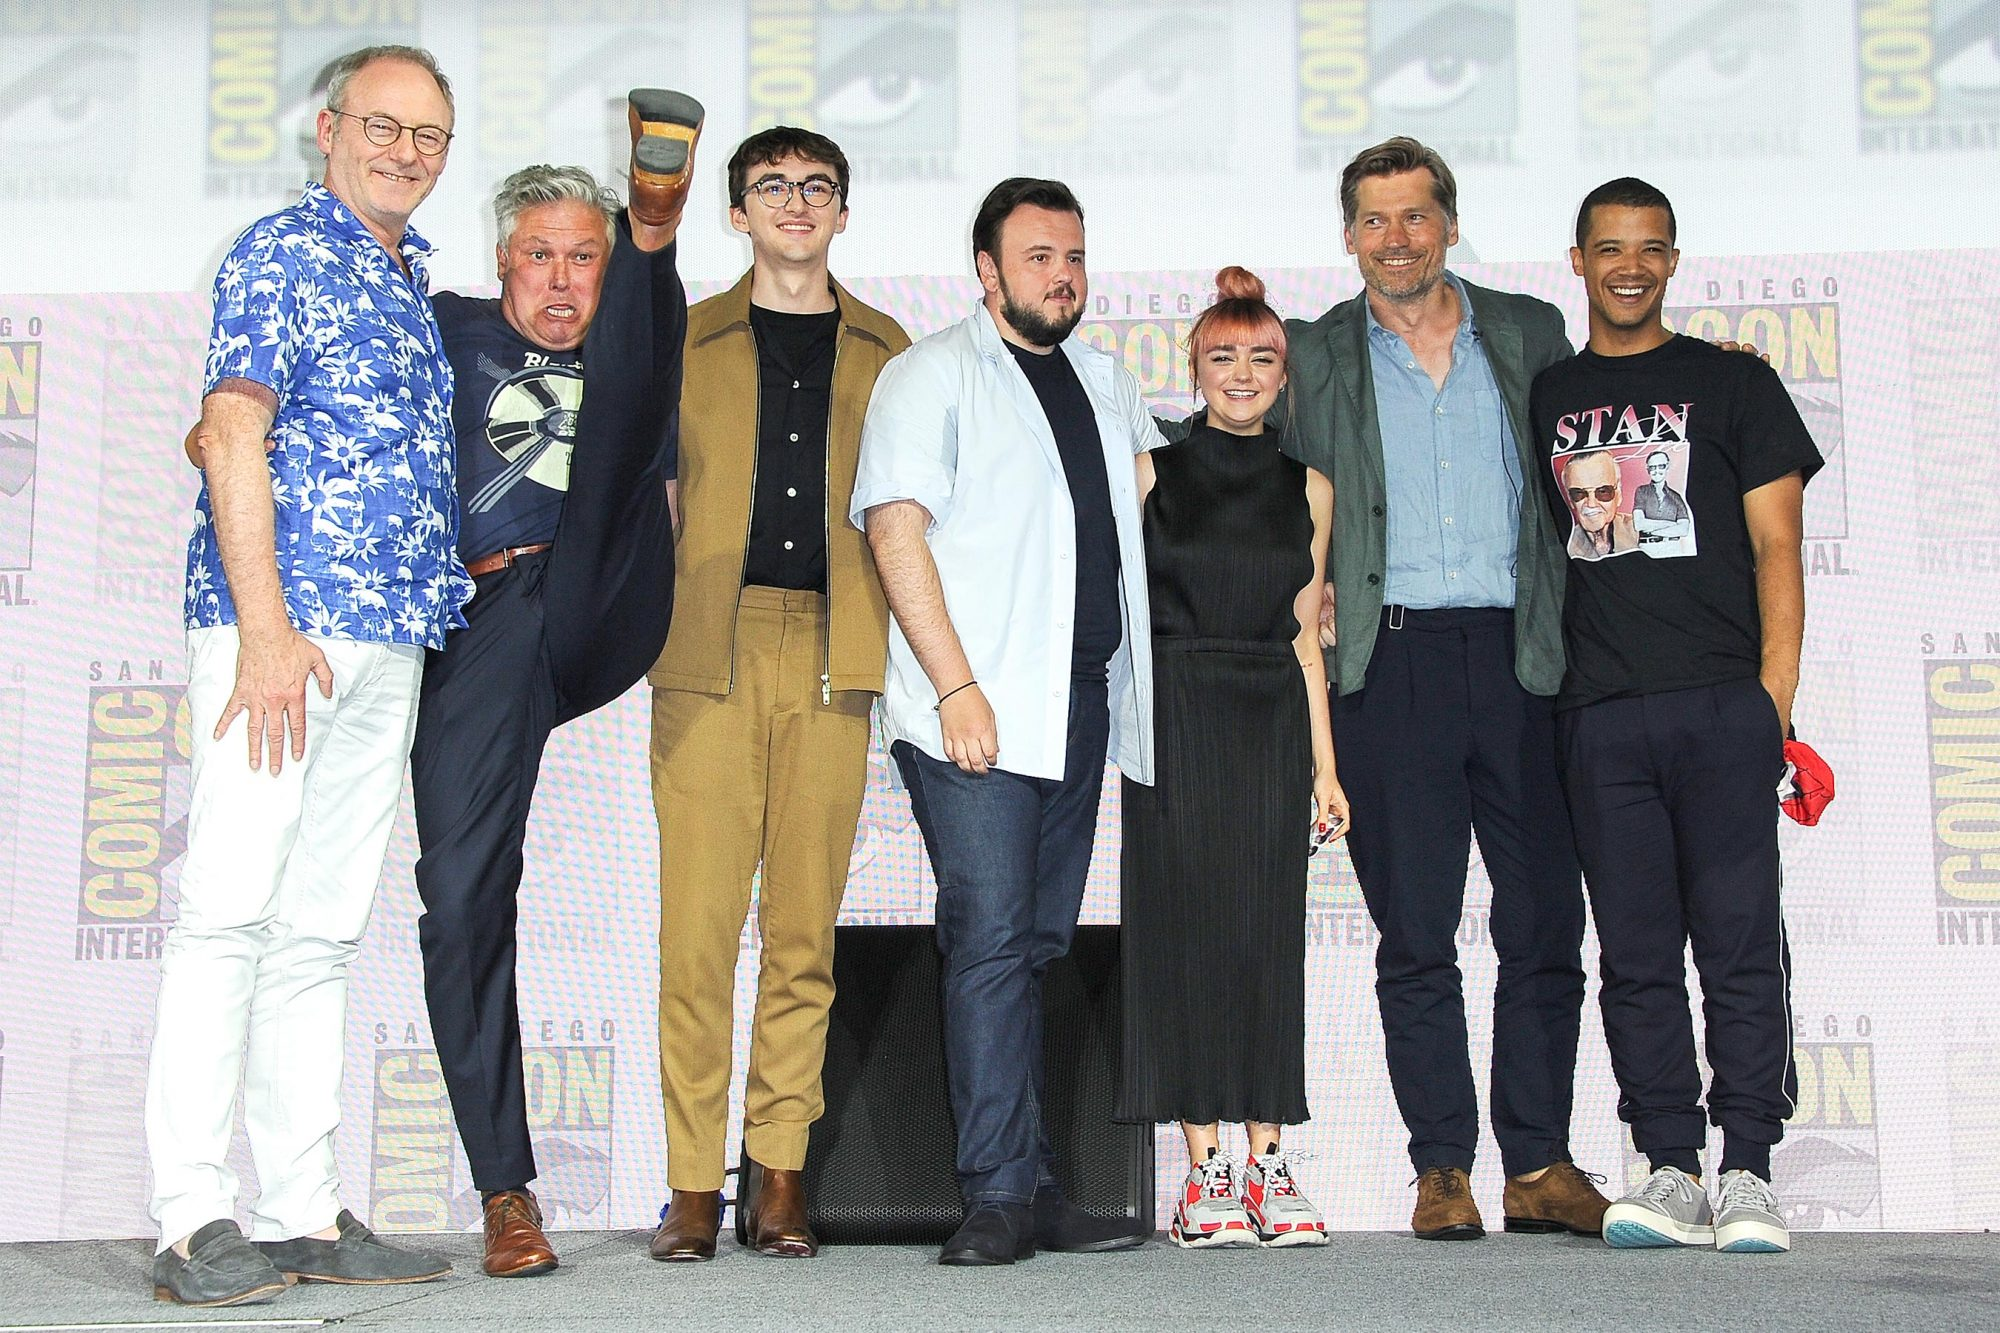 "SAN DIEGO, CALIFORNIA - JULY 19: (L-R) Liam Cunningham, Conleth Hill, Isaac Hempstead Wright, John Bradley, Maisie Williams, Nikolaj Coster-Waldau and Jacob Anderson speak at the ""Game Of Thrones"" Panel And Q&A during 2019 Comic-Con International at San Diego Convention Center on July 19, 2019 in San Diego, California. (Photo by Albert L. Ortega/Getty Images)"